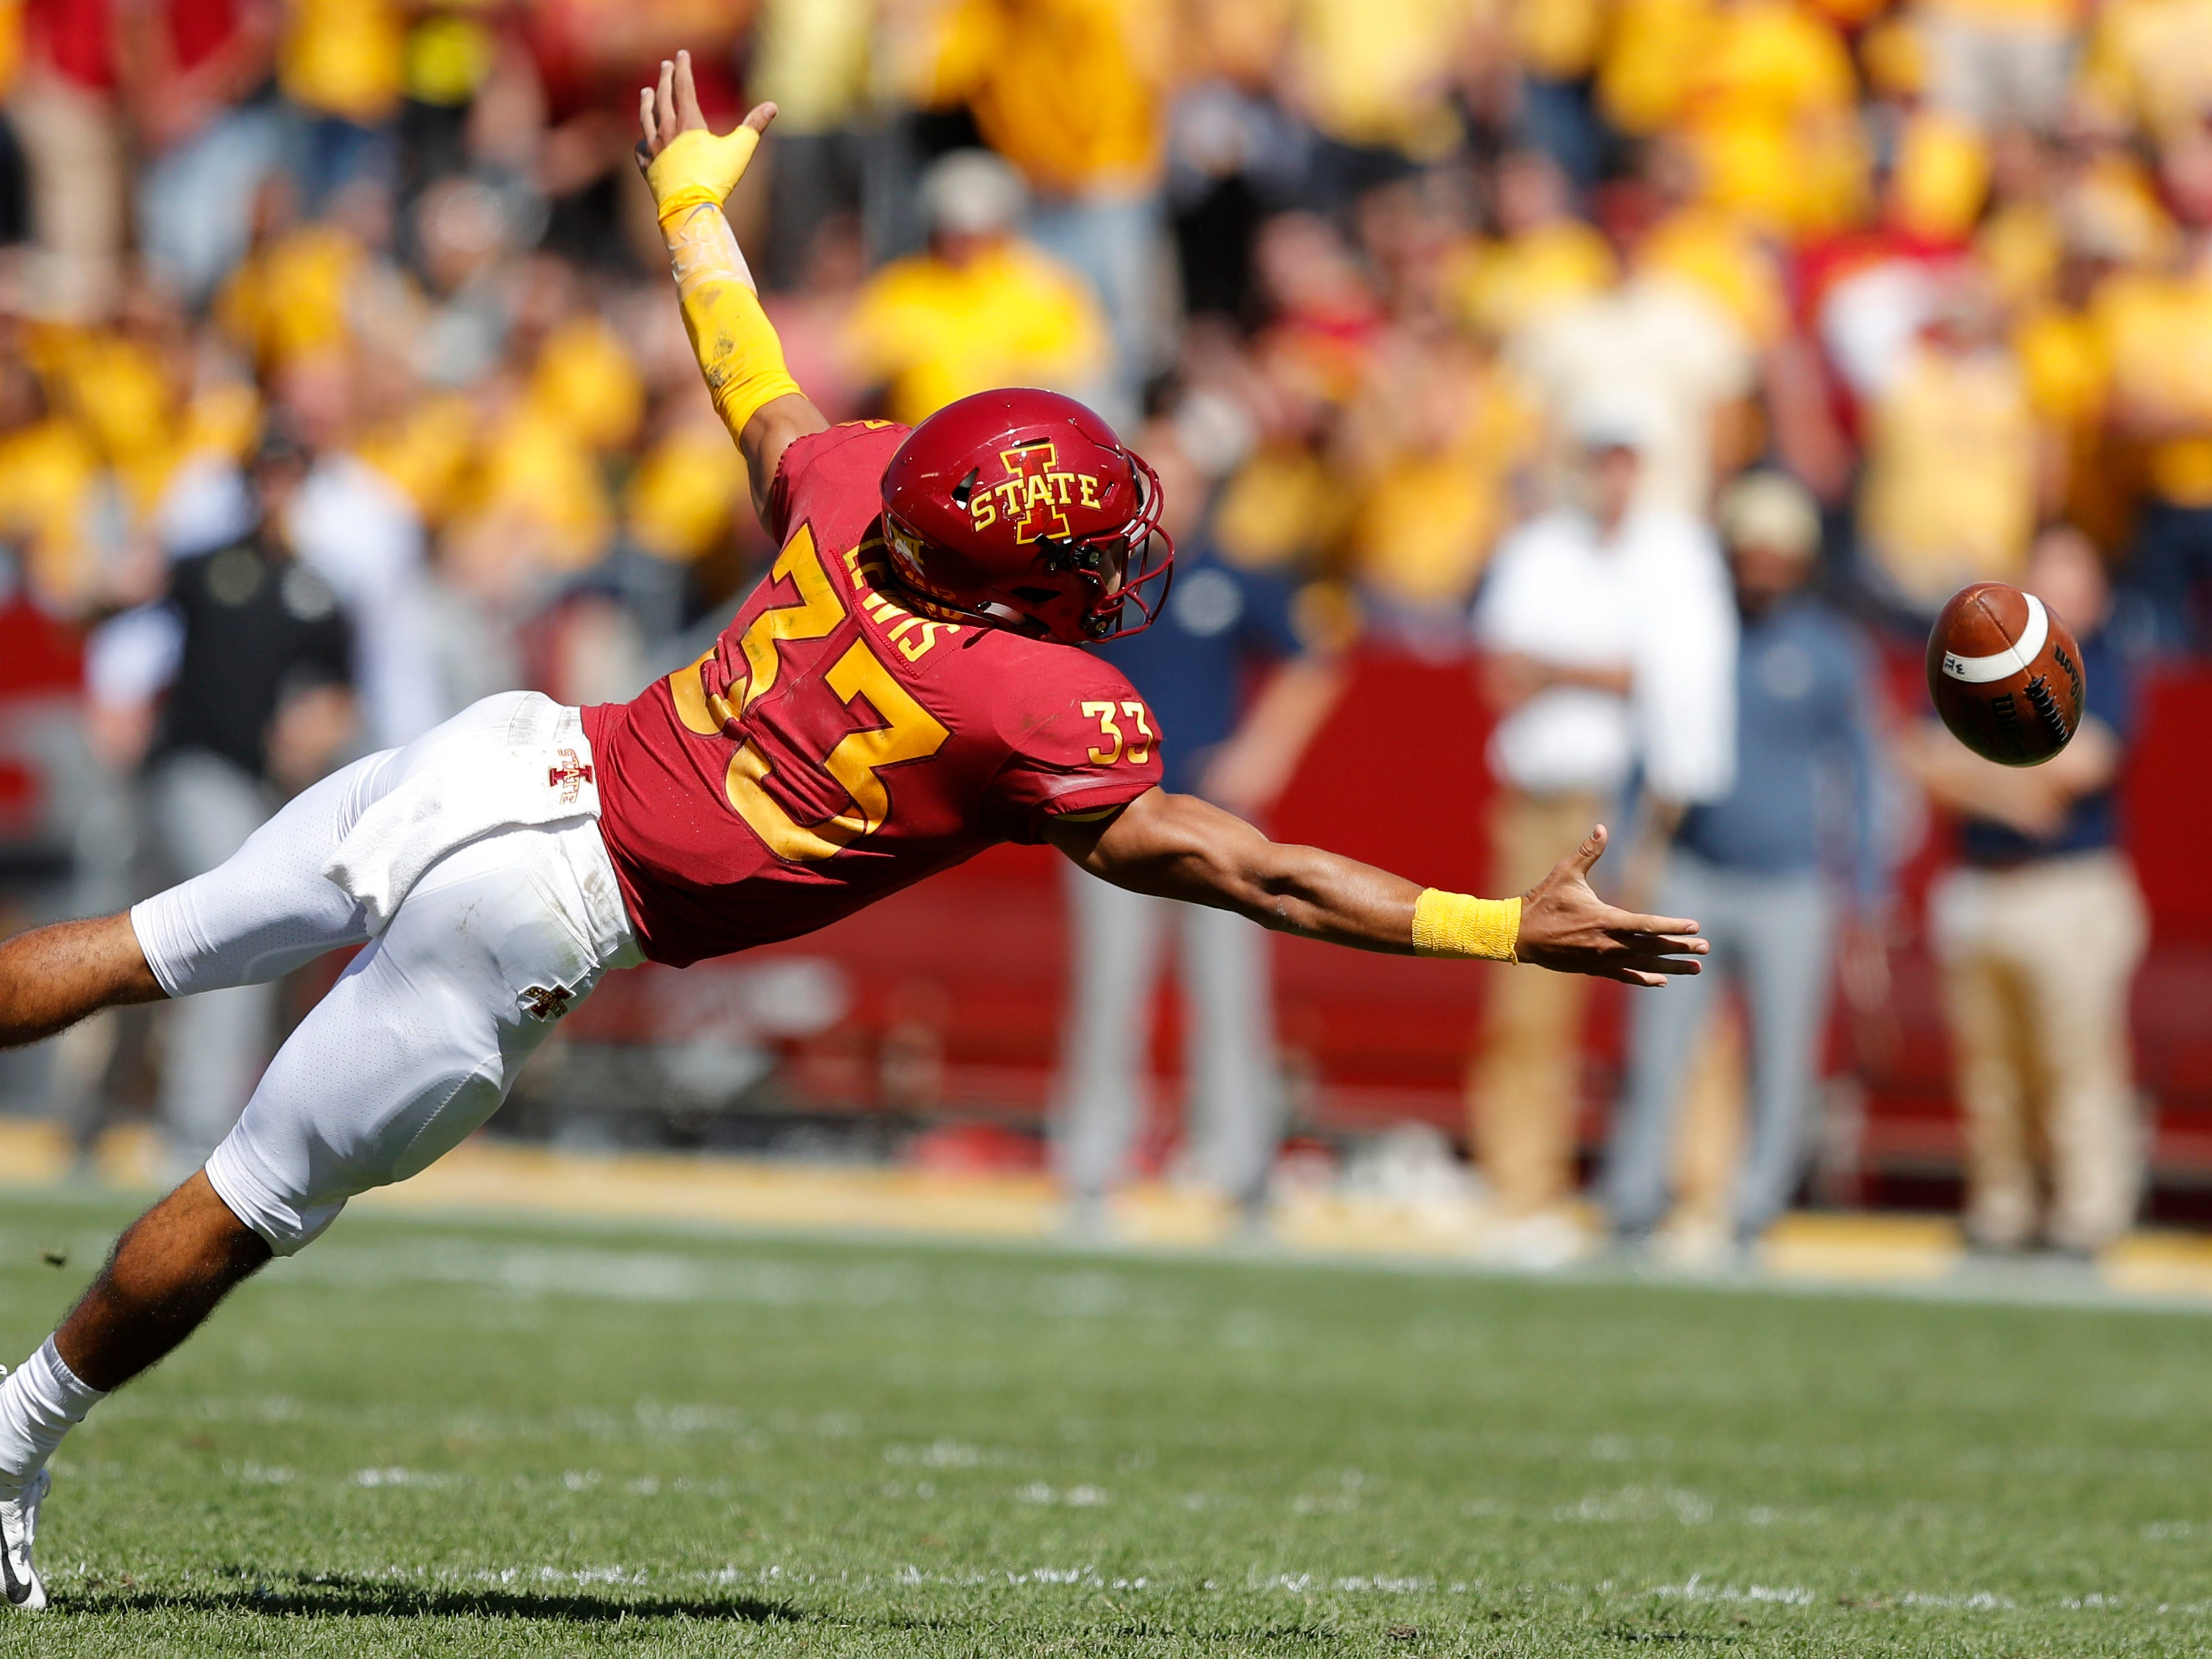 Iowa State defensive back Braxton Lewis makes a diving attempt for an interception during the second half of an NCAA college football game against Akron, Saturday, Sept. 22, 2018, in Ames, Iowa. The pass fell incomplete. Iowa State won 26-13.